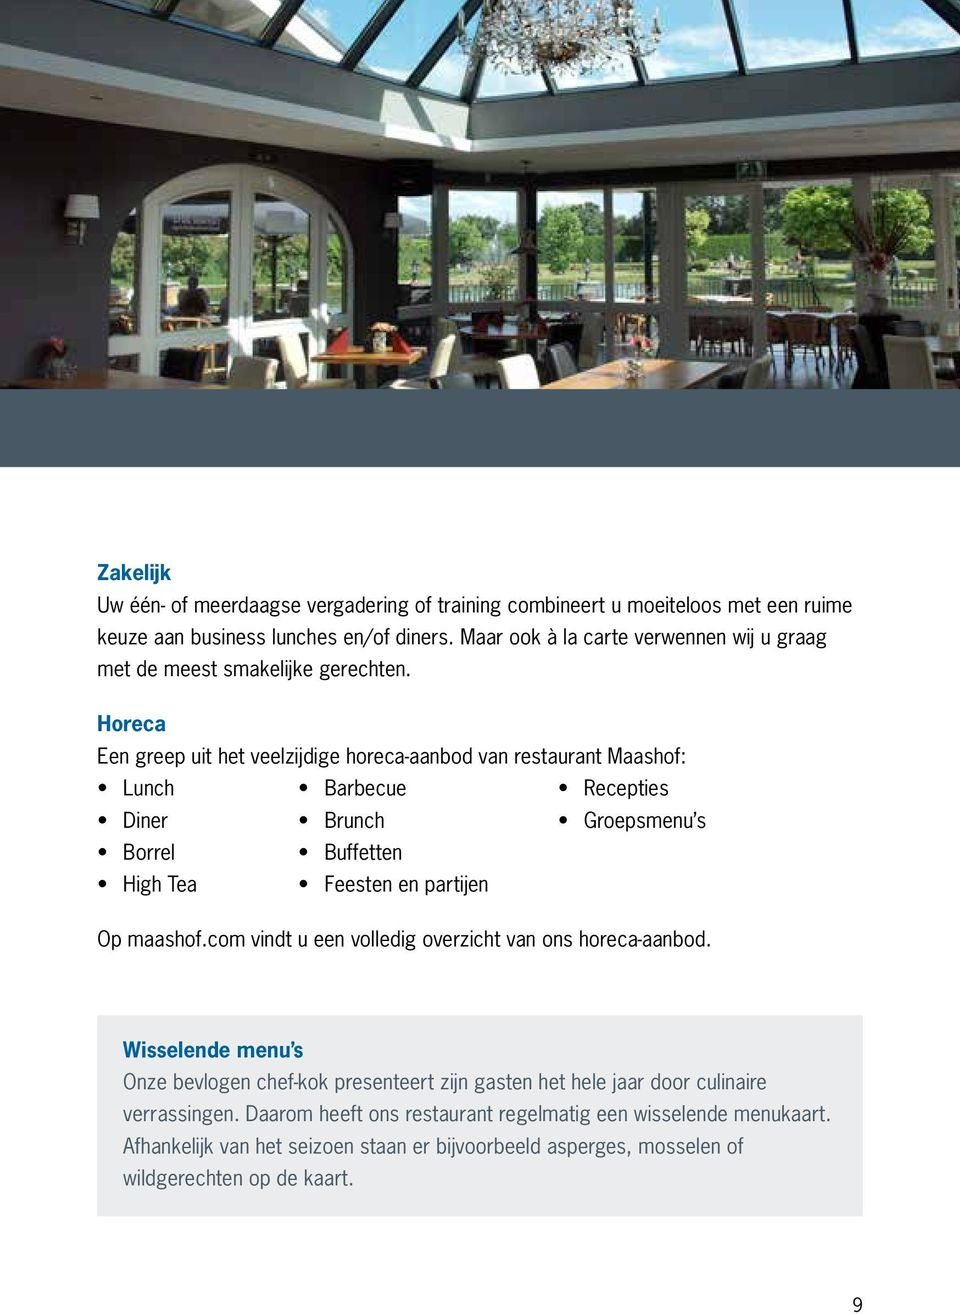 Horeca Een greep uit het veelzijdige horeca-aanbod van restaurant Maashof: lunch barbecue recepties diner brunch Groepsmenu s borrel Buffetten High Tea Feesten en partijen Op